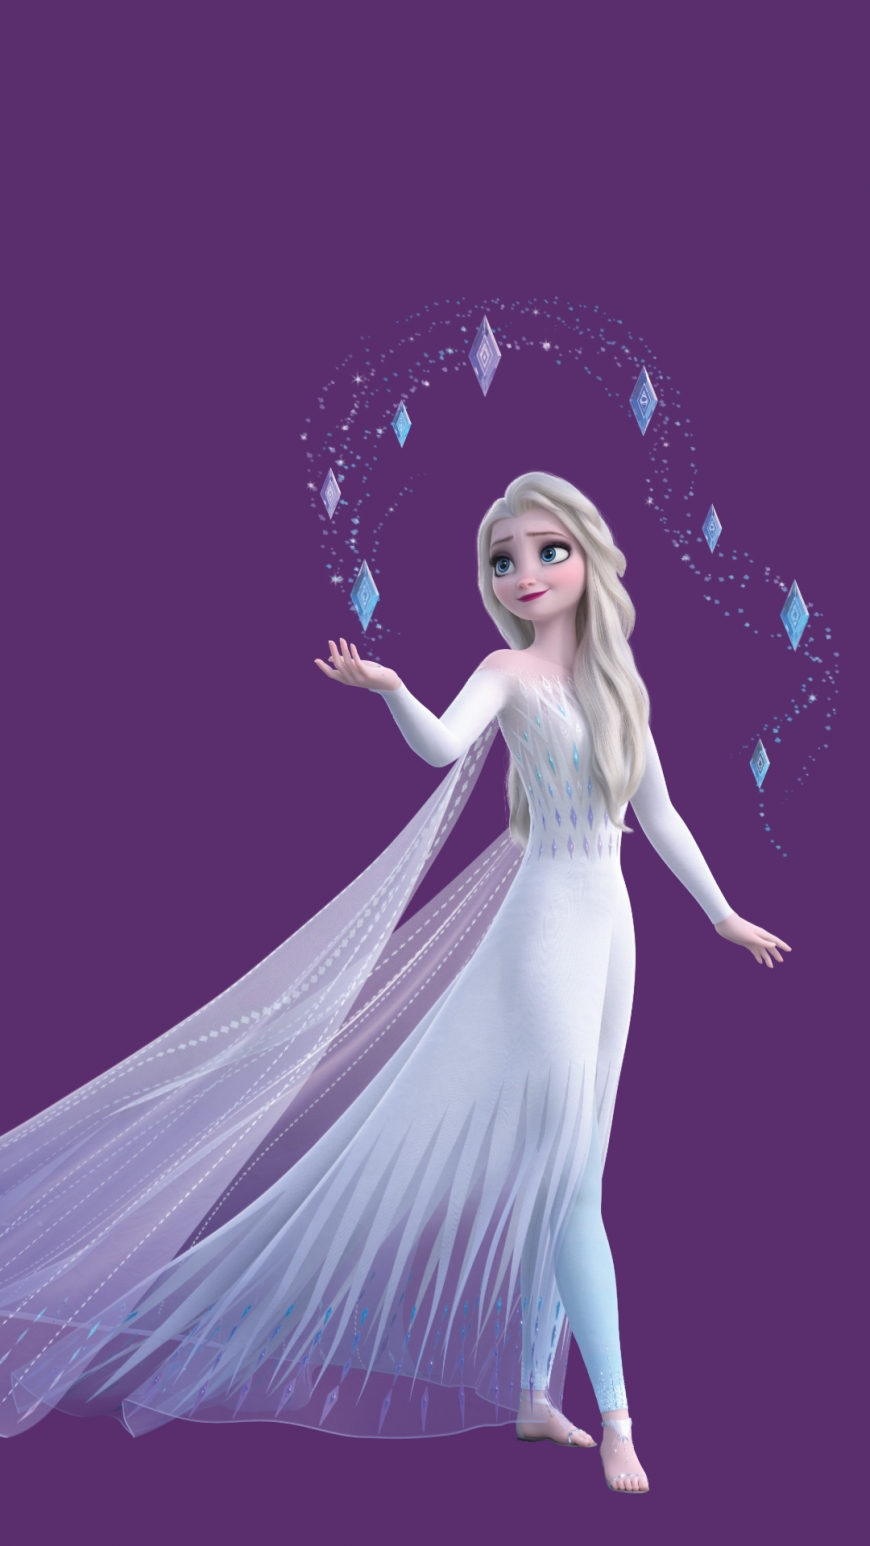 Frozen 2 Hd Wallpaper Elsa White Dress Hair Down Mobile In 2020 Disney Princess Drawings Frozen Pictures Disney Princess Pictures